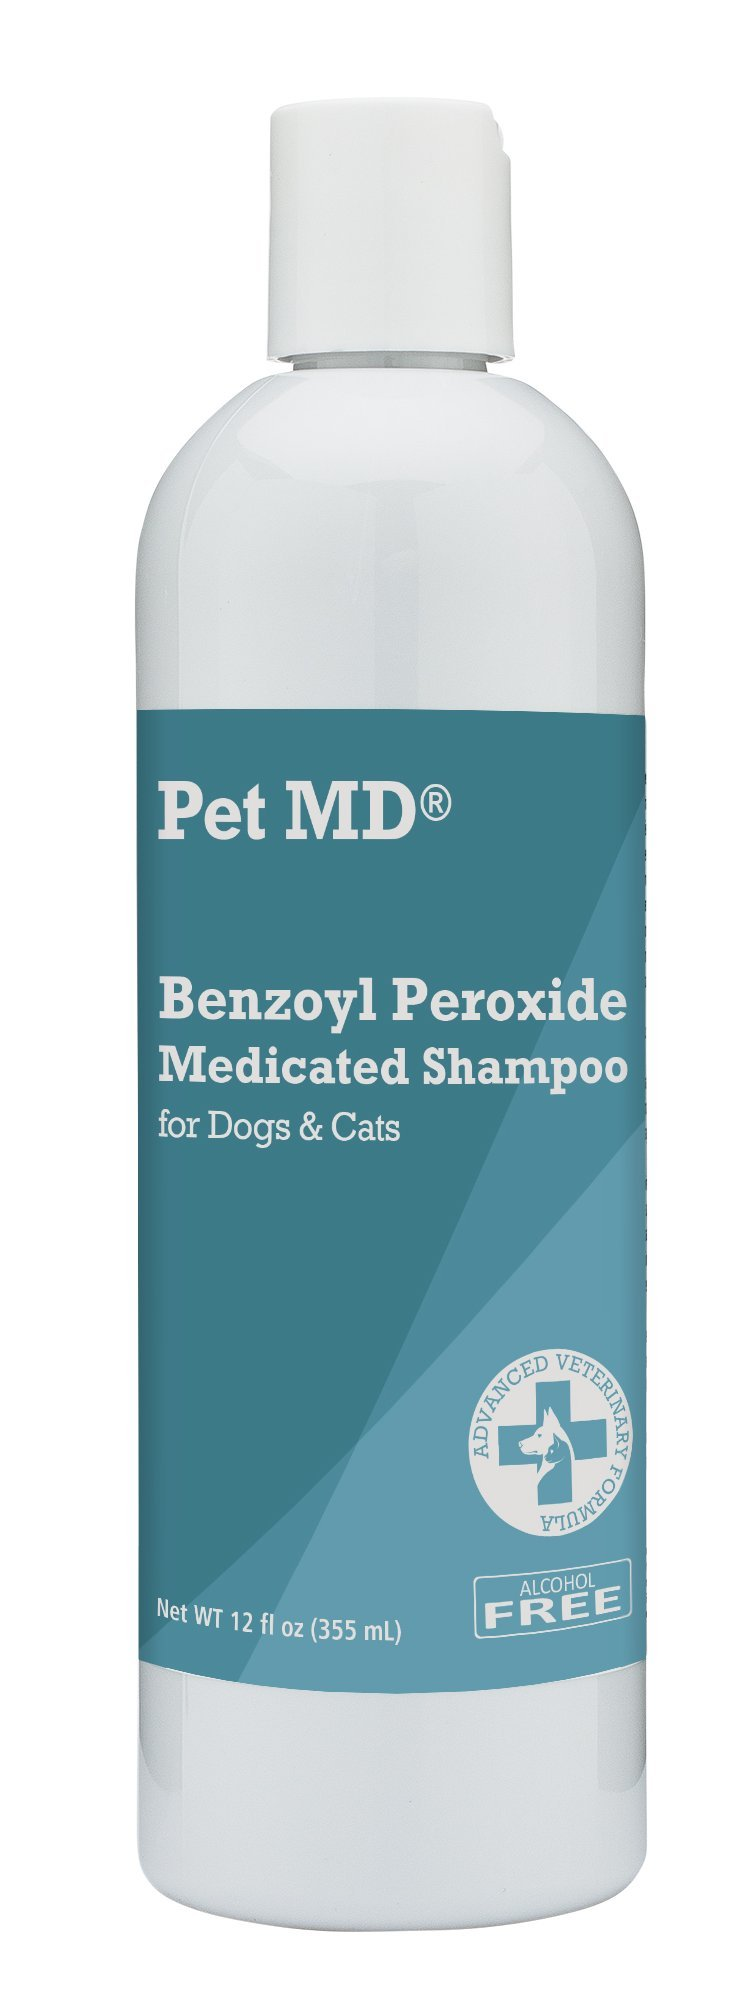 Pet MD Benzoyl Peroxide Medicated Shampoo for Dogs and Cats, Effective for Seborhhea, Dandruff, Mange, Itch Relief, Acne and Folliculitis, Citrus Scent, 12 oz. by Pet MD